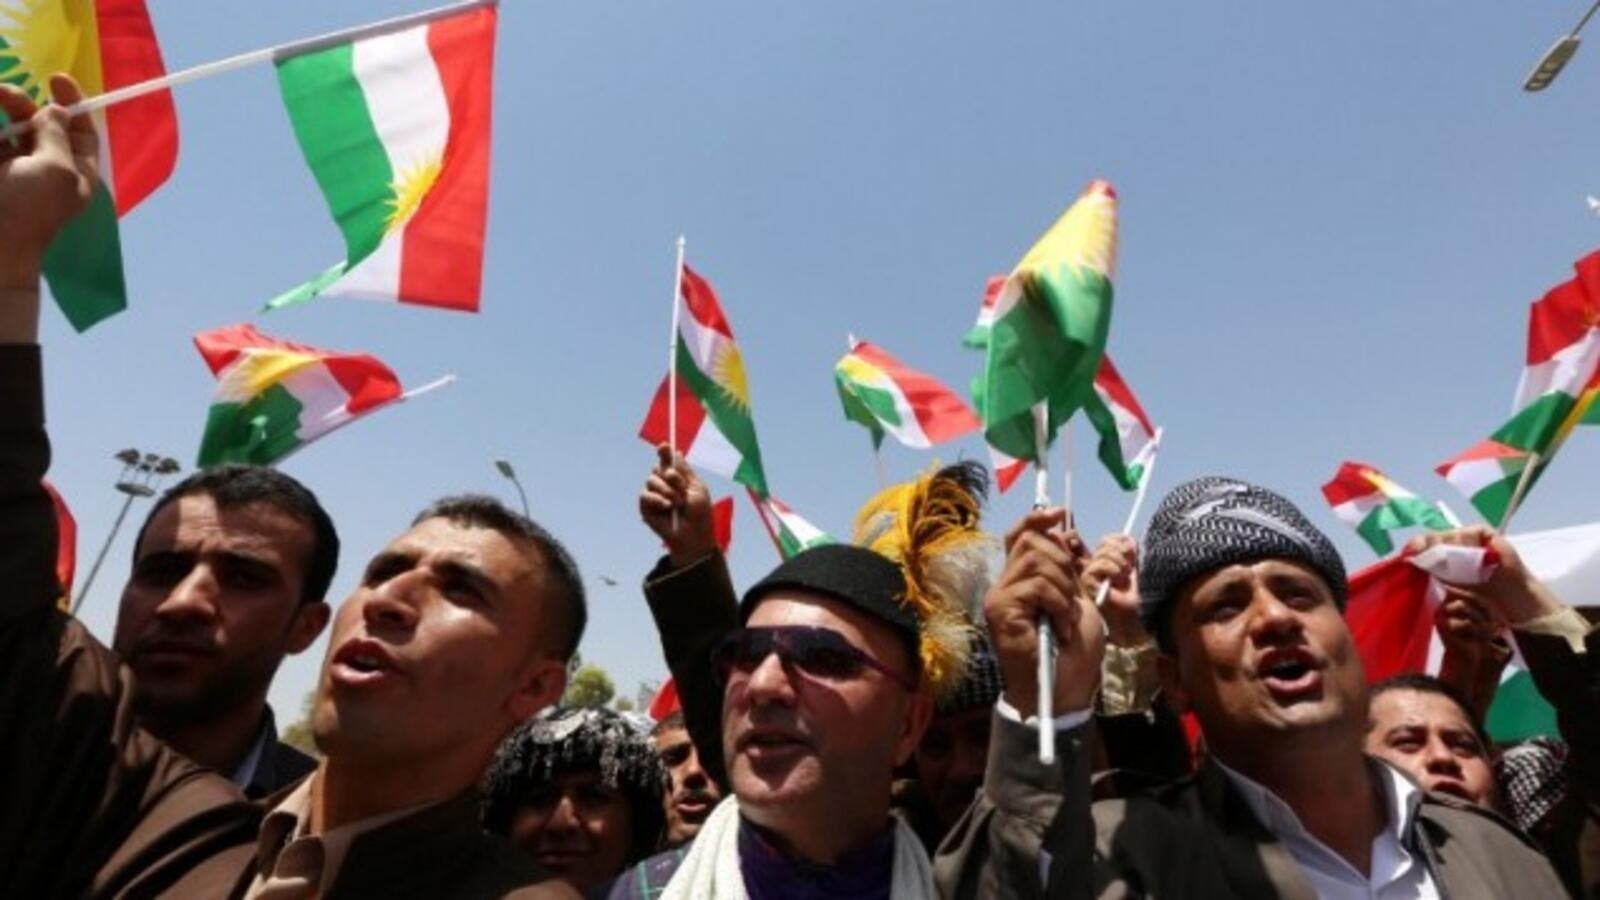 Iraqi Kurdish protesters wave flags of their autonomous Kurdistan region during a demonstration to claim for its independence. (AFP/Safin Hamed)